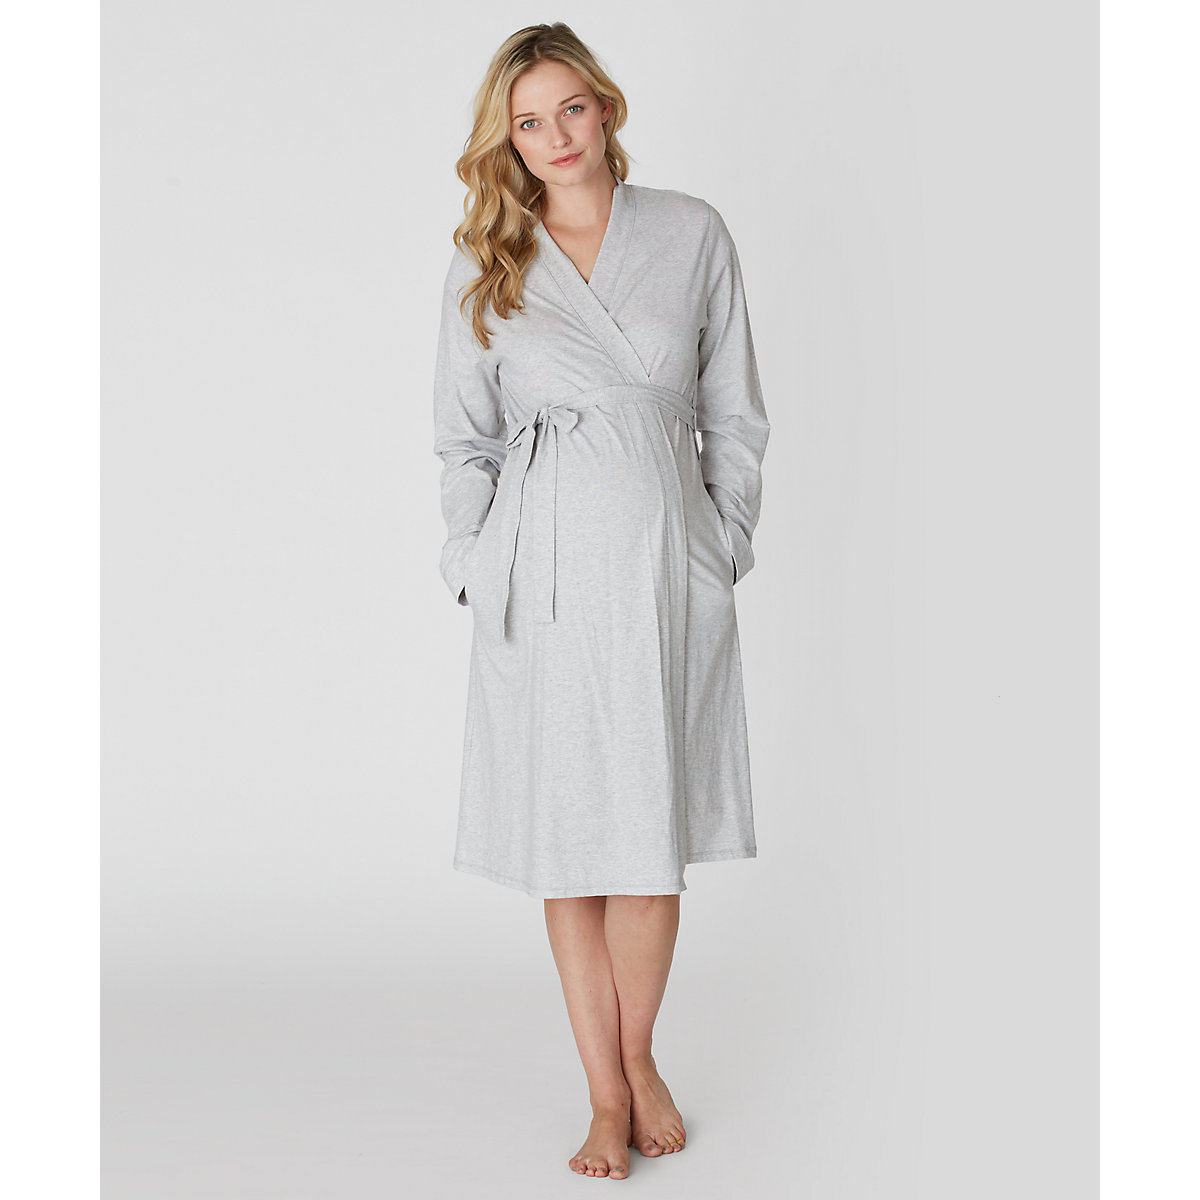 Blooming Marvellous Maternity Grey Marl Robe